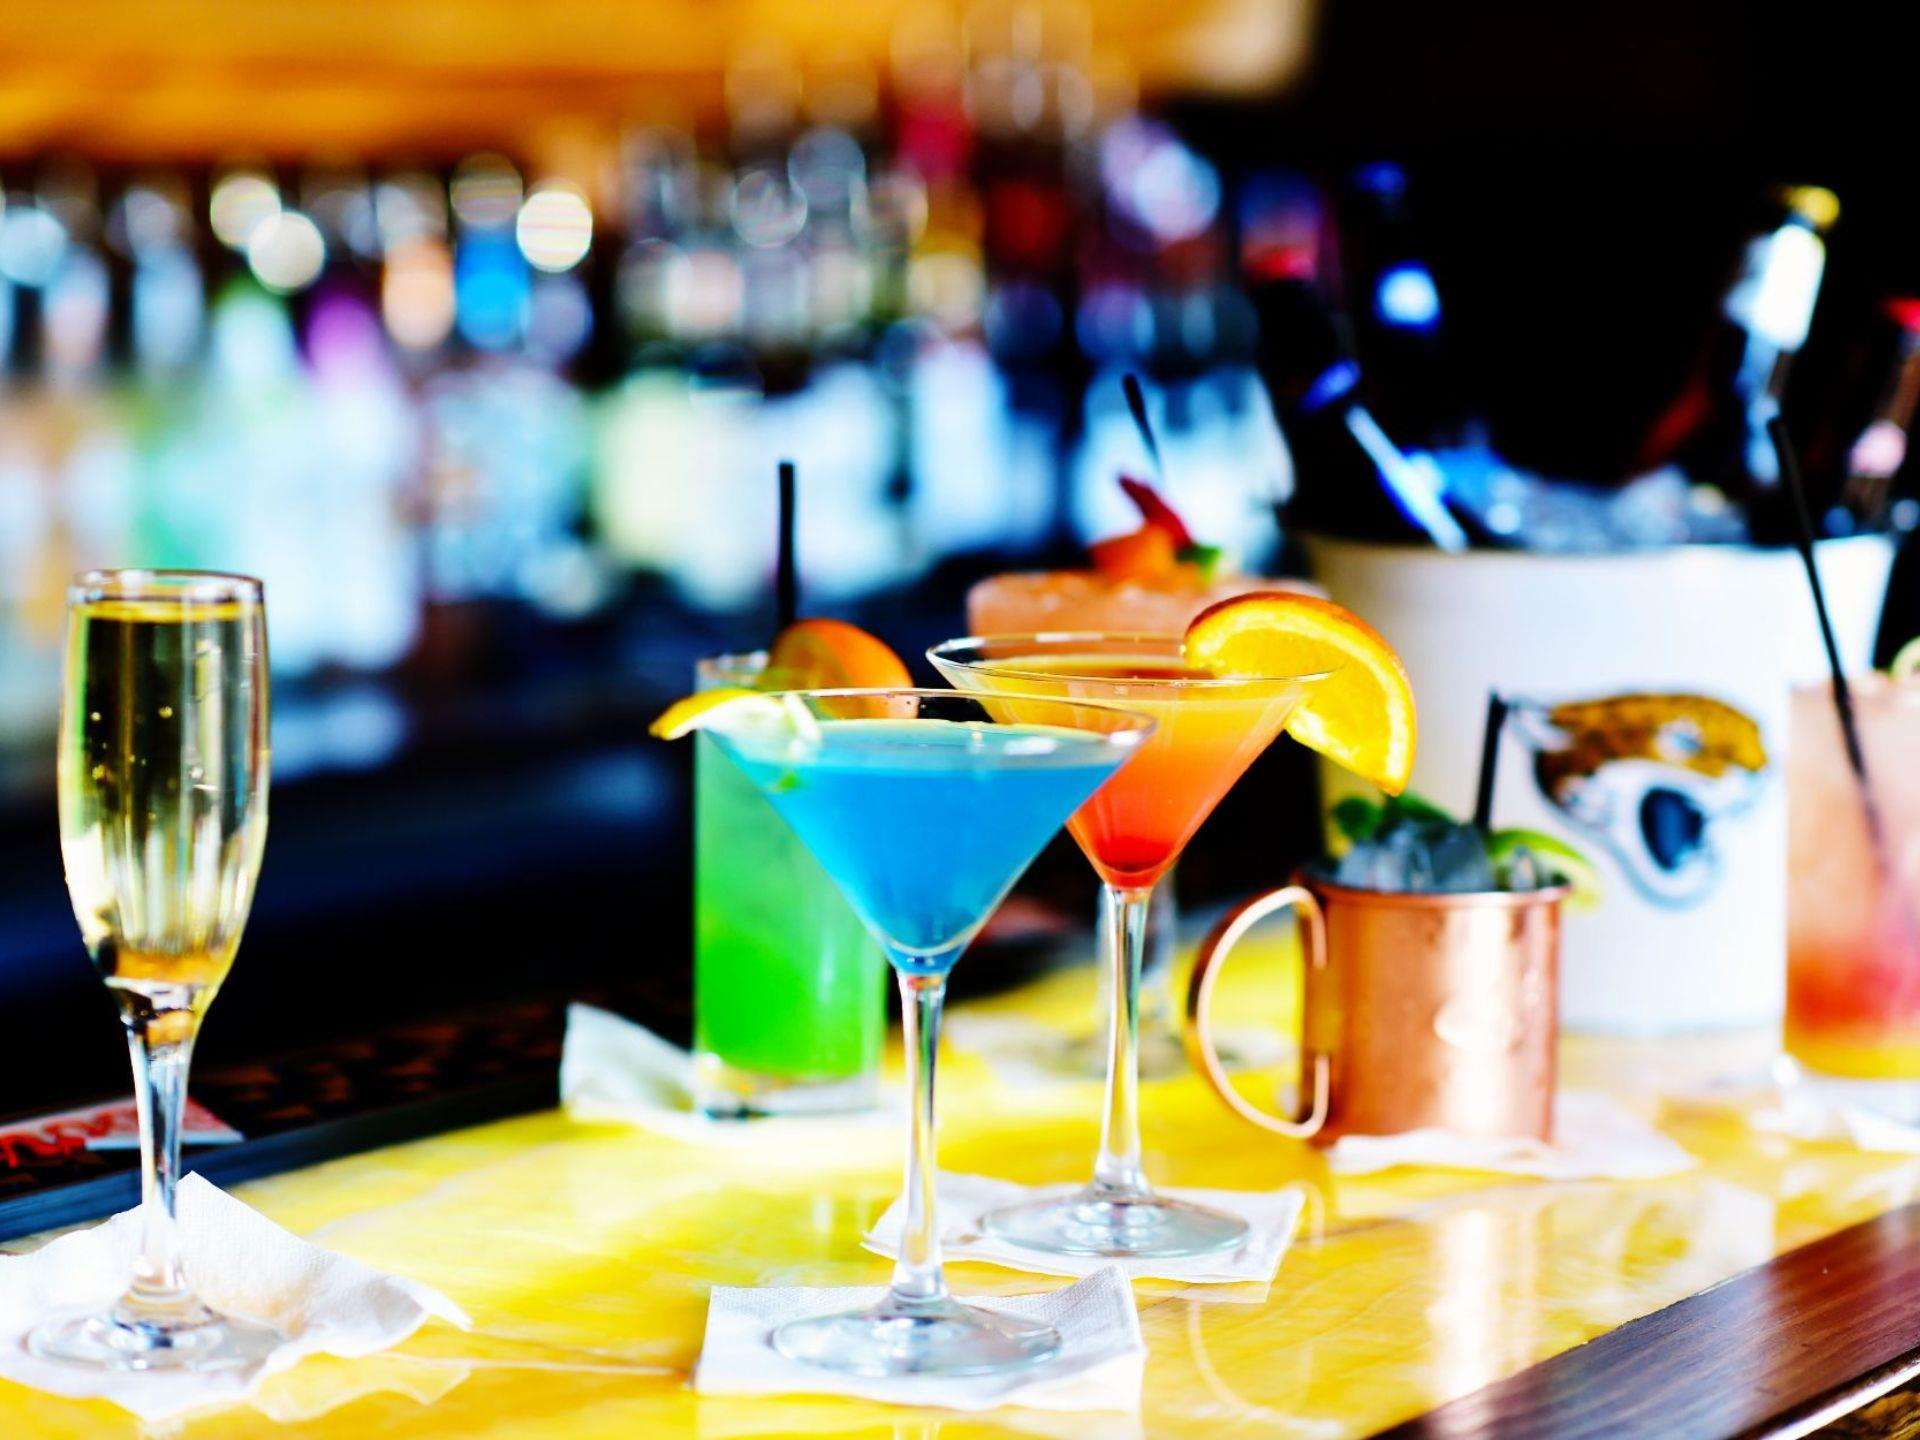 Assorted mixed cocktails on a bar-top with bottles of liquor blurred in the background